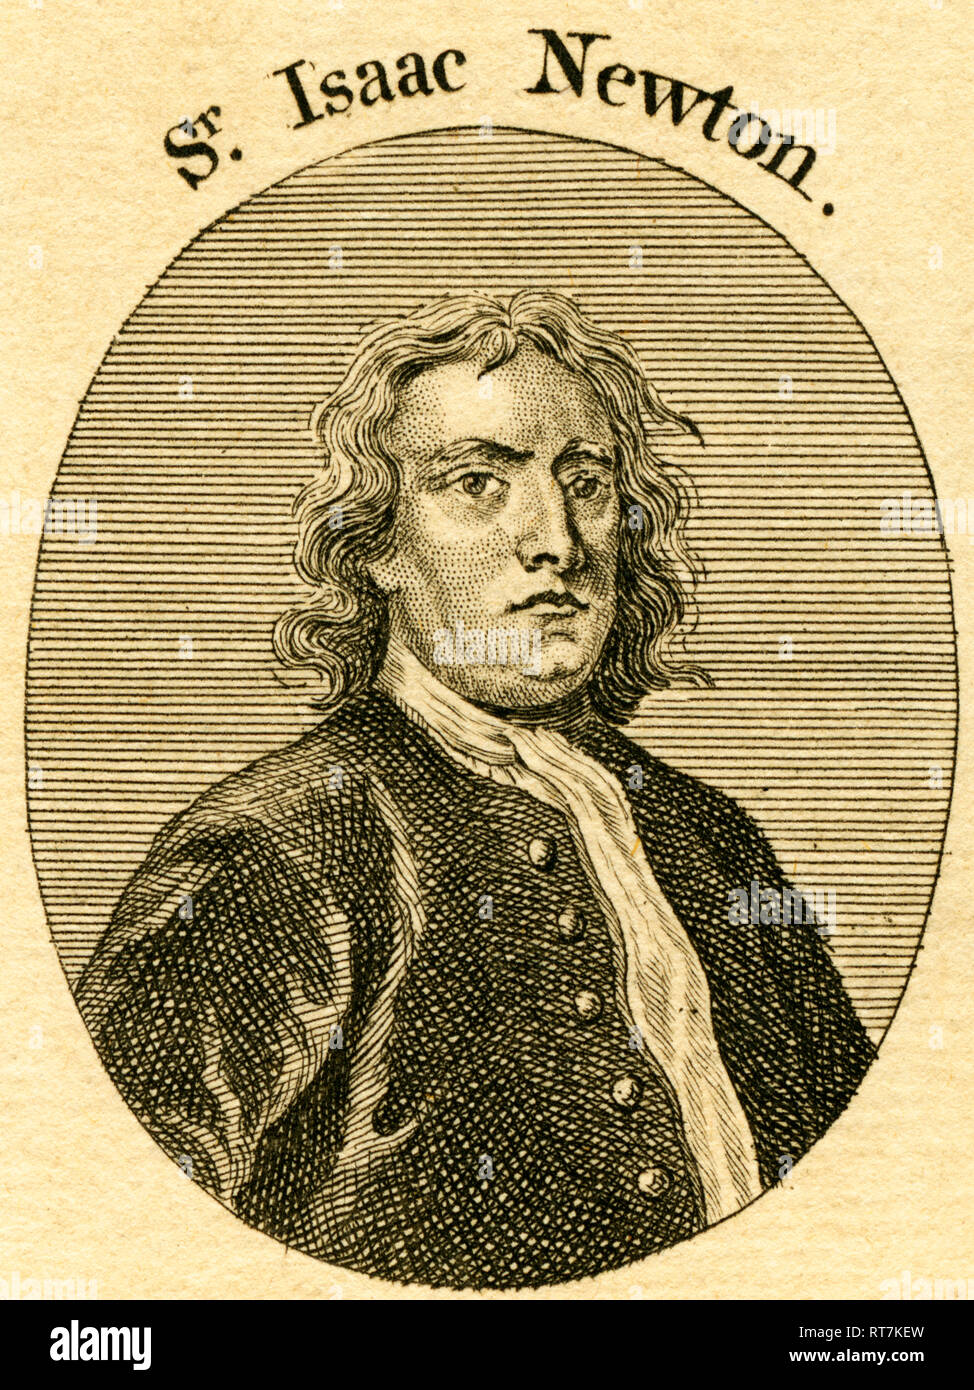 Sir Isaac Newton, English natural philosopher, etching from an book of the 18th century (1766)., Additional-Rights-Clearance-Info-Not-Available - Stock Image